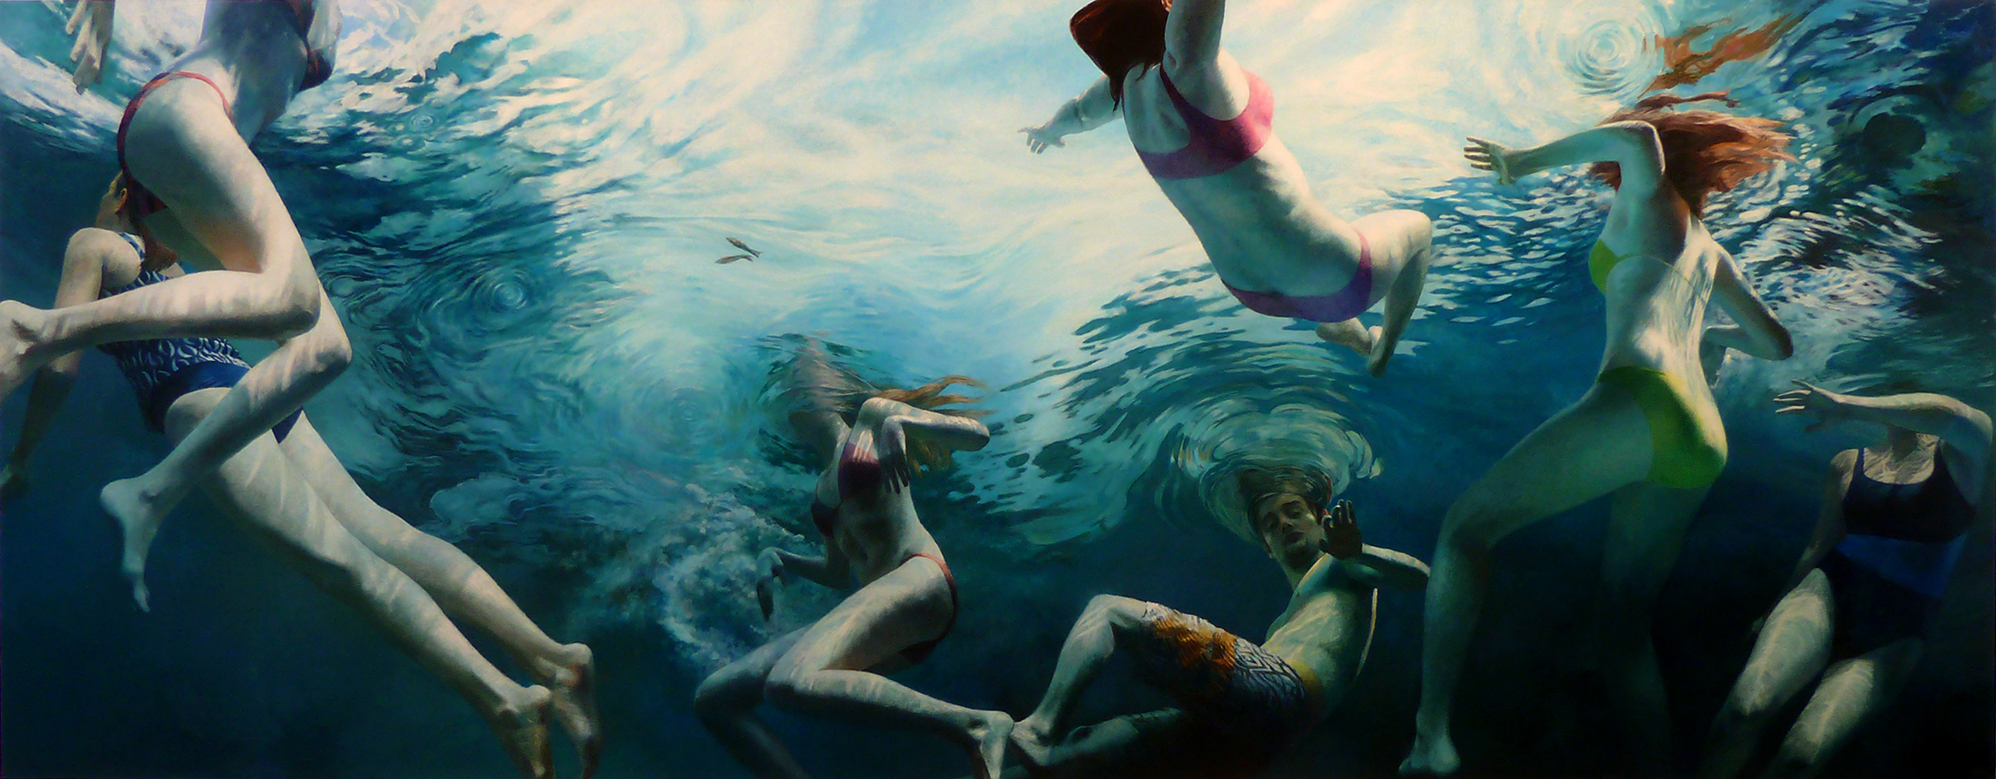 """Cenote Series: Seven Swimmers"", 50"" x 128"", acrylic on linen"